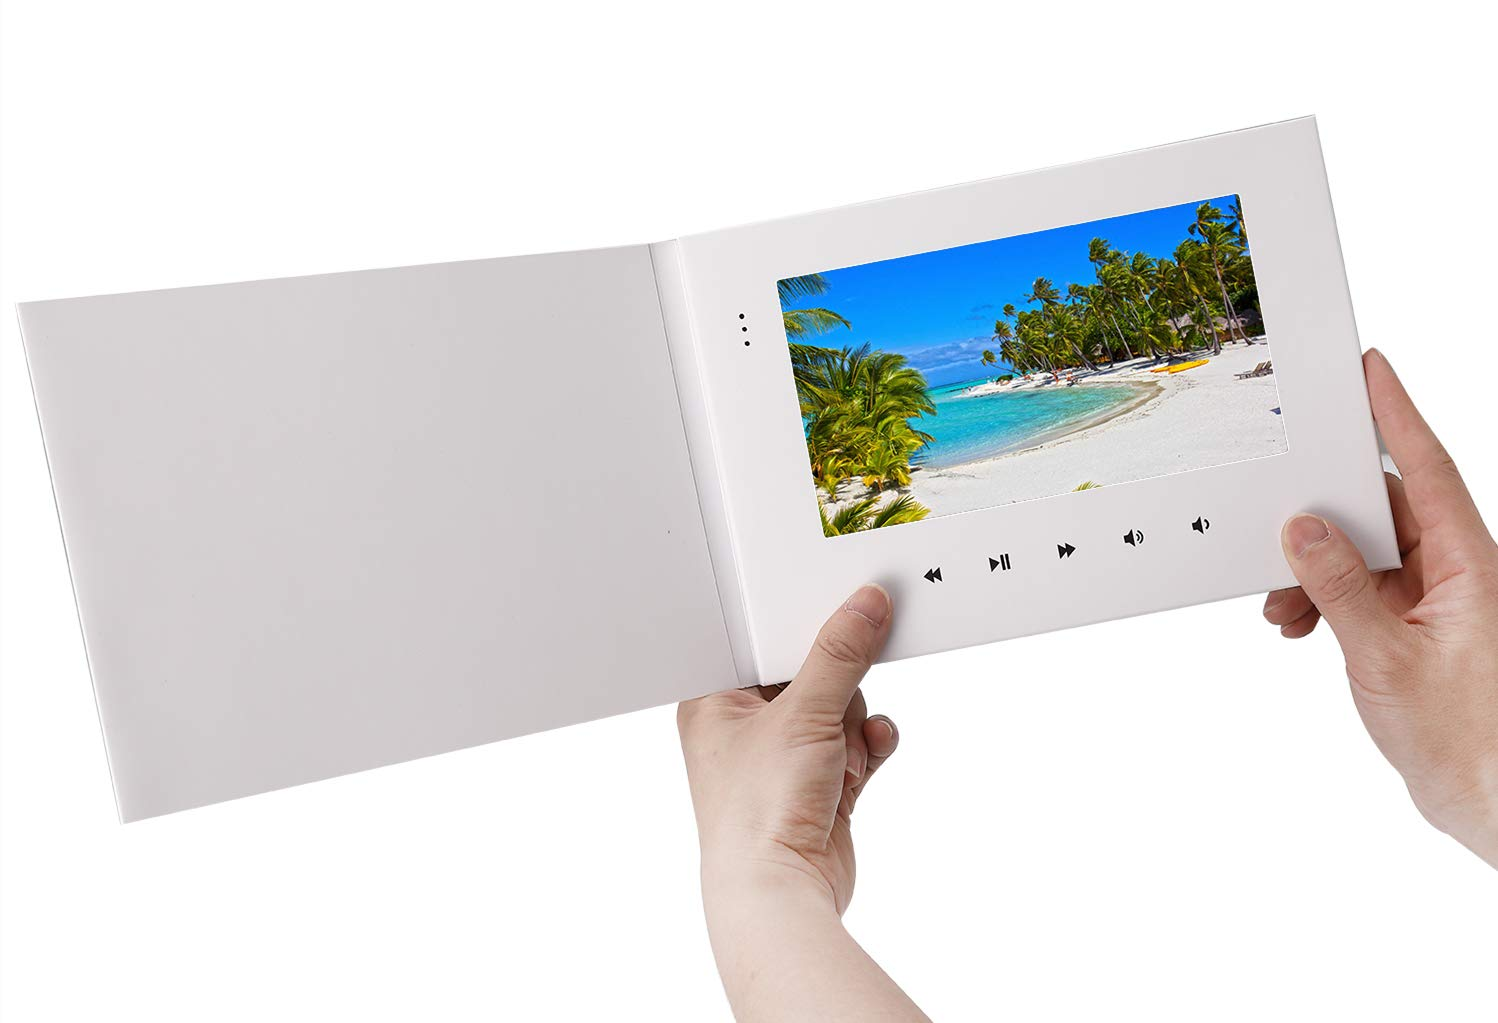 LuguLake 7'' Video Greeting Card,Video Brochure for Father's Day, Anniversary, Marketing Include 2G Memory and Rechargeable Battery LCD Screen Digital Brochures Photo Frame